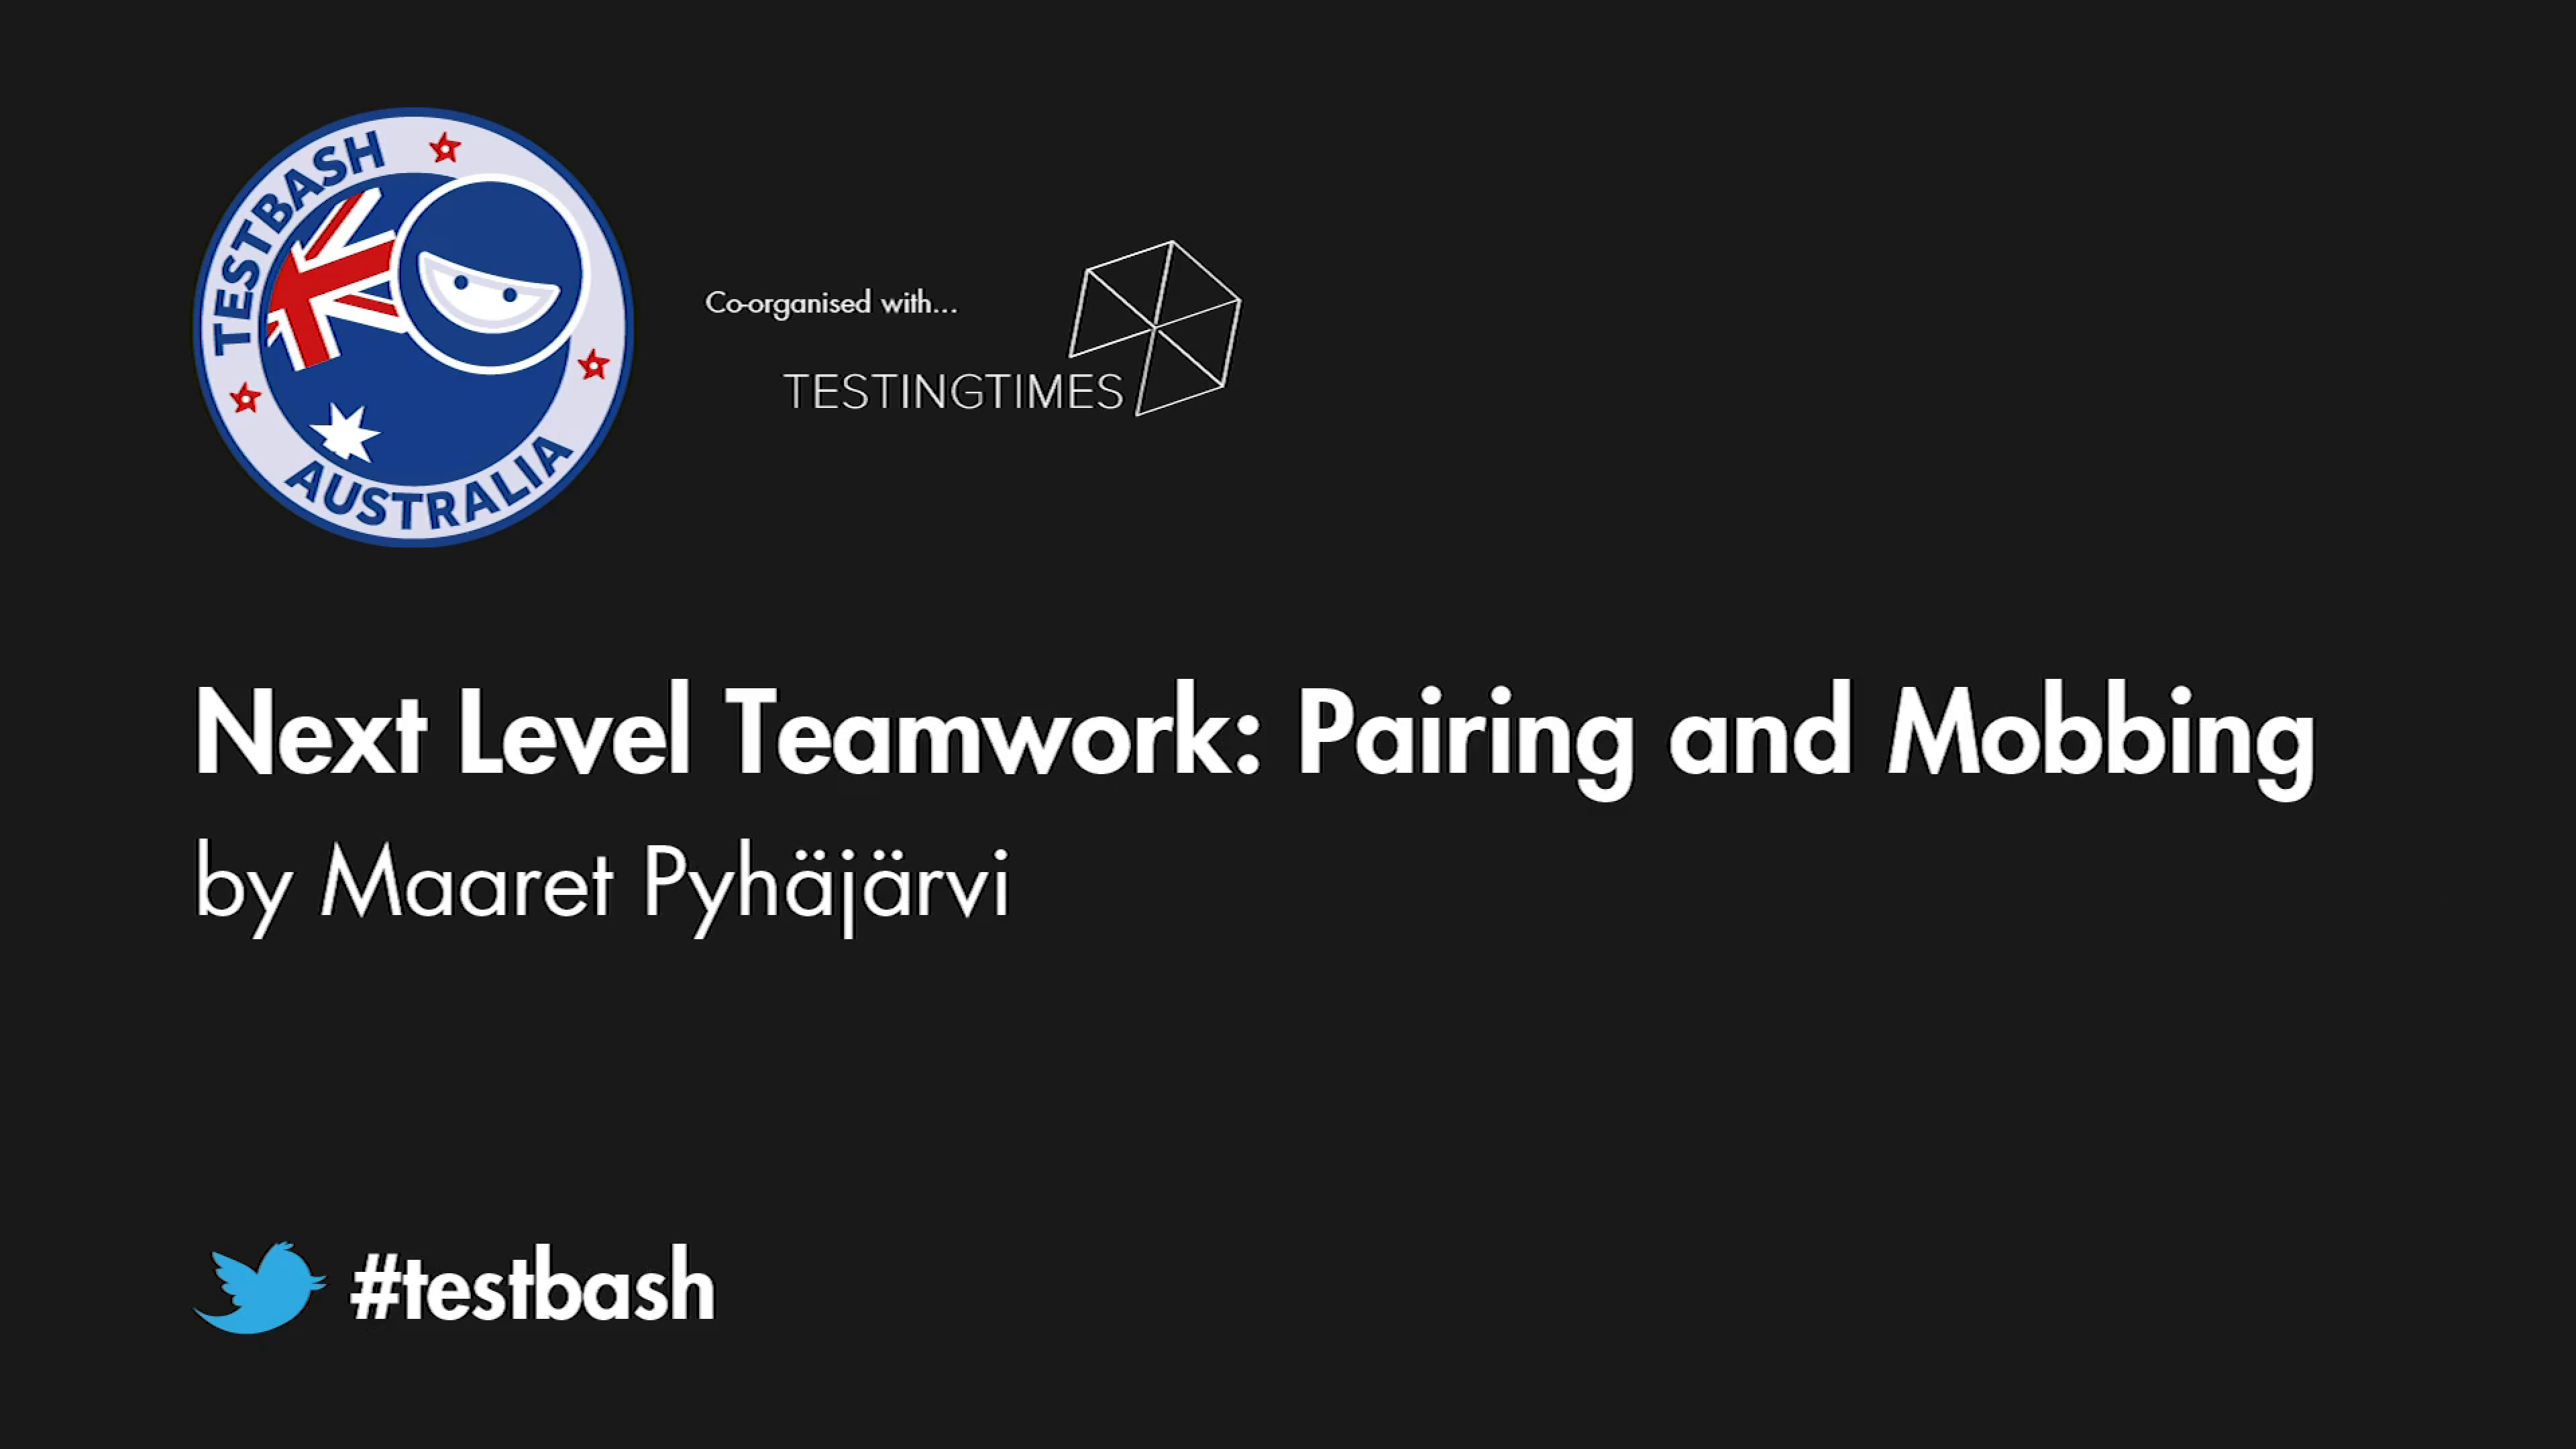 Next Level Teamwork: Pairing And Mobbing - Maaret Pyhäjärvi